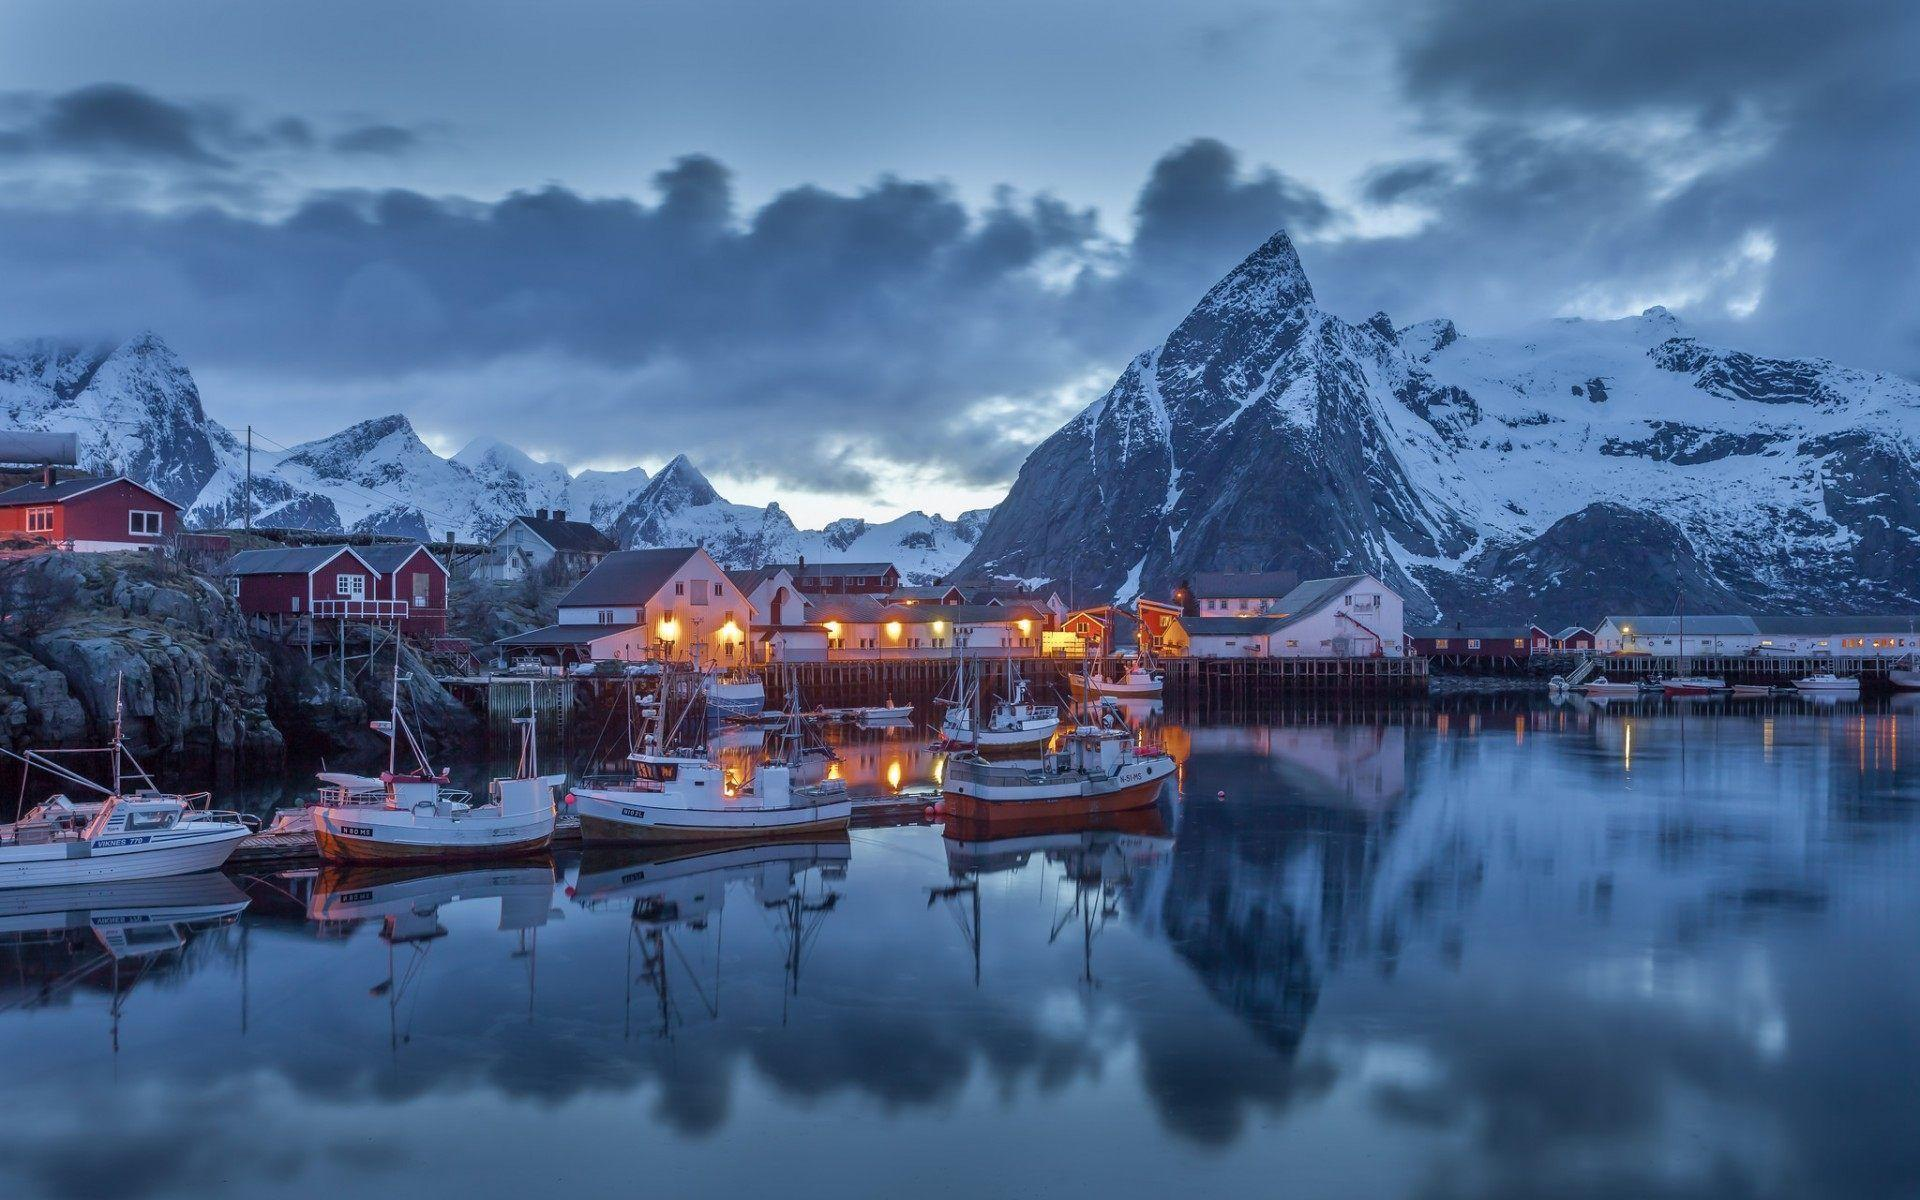 Lofoten Islands Norway Wallpaper For Desktop Free Download